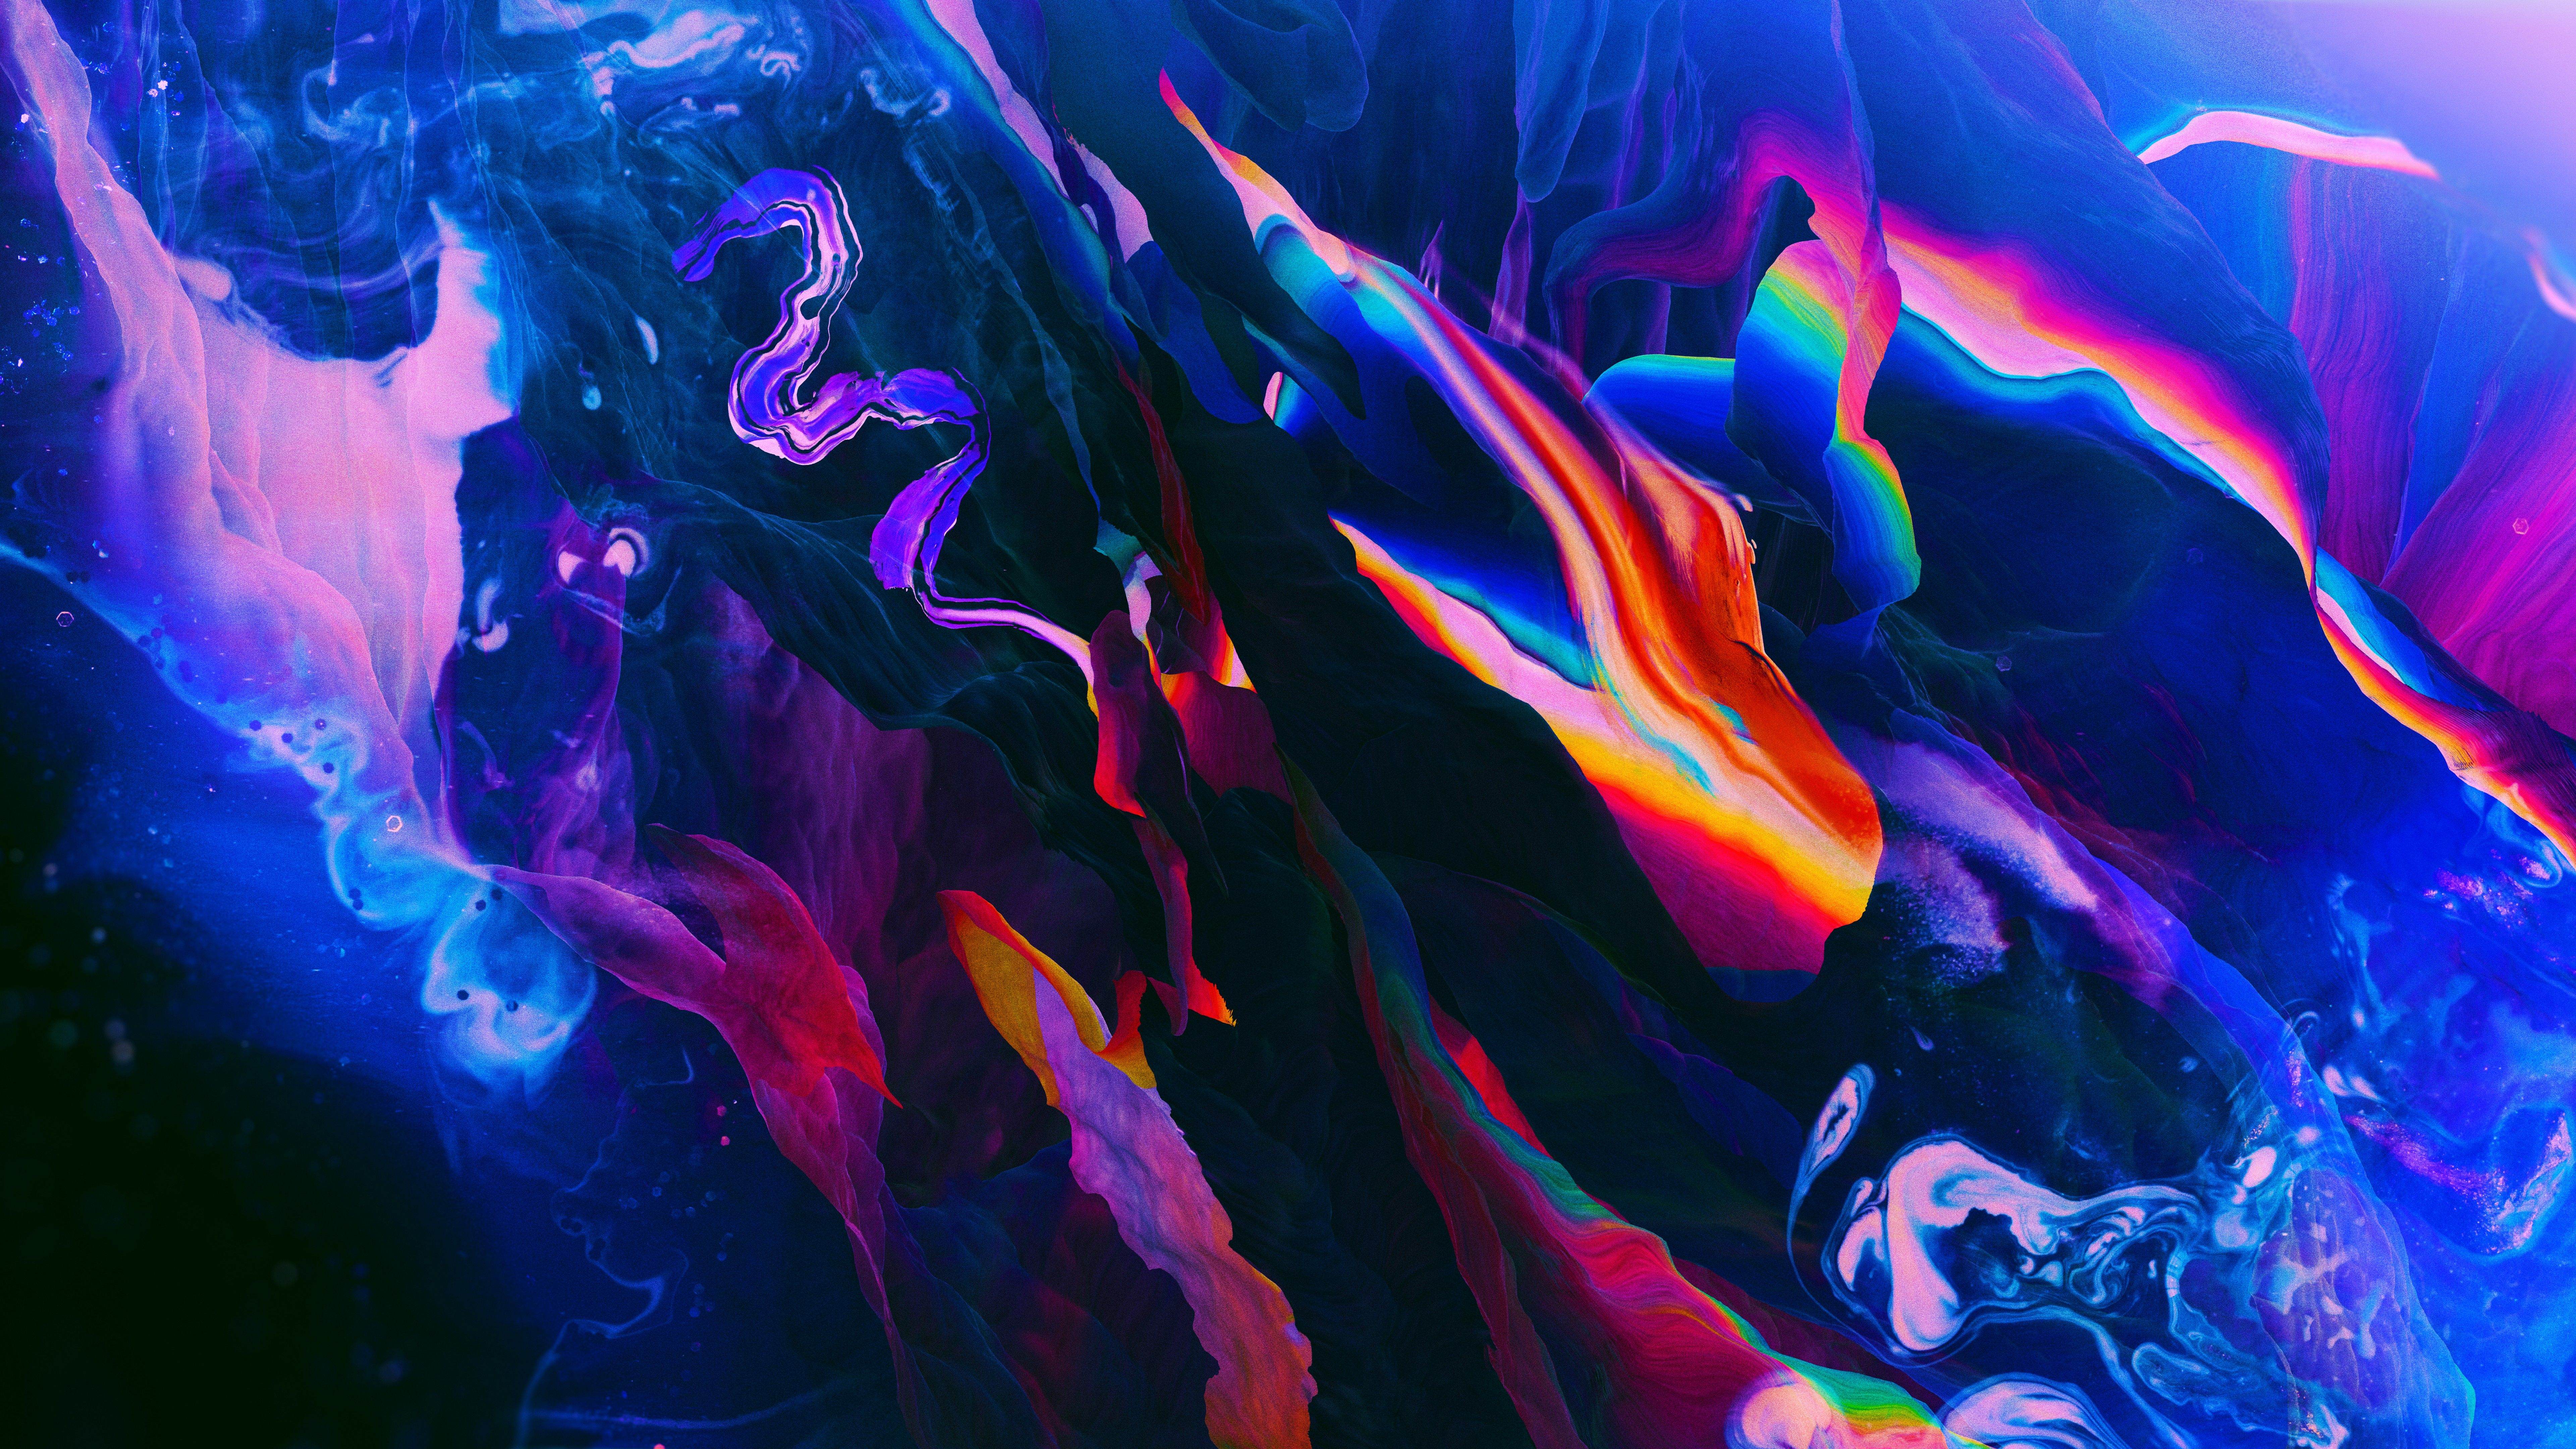 Wallpaper Collection 37 Best Free Hd Abstract Wallpaper 4k Background To Dow In 2020 Abstract Art Wallpaper Computer Wallpaper Desktop Wallpapers Abstract Wallpaper